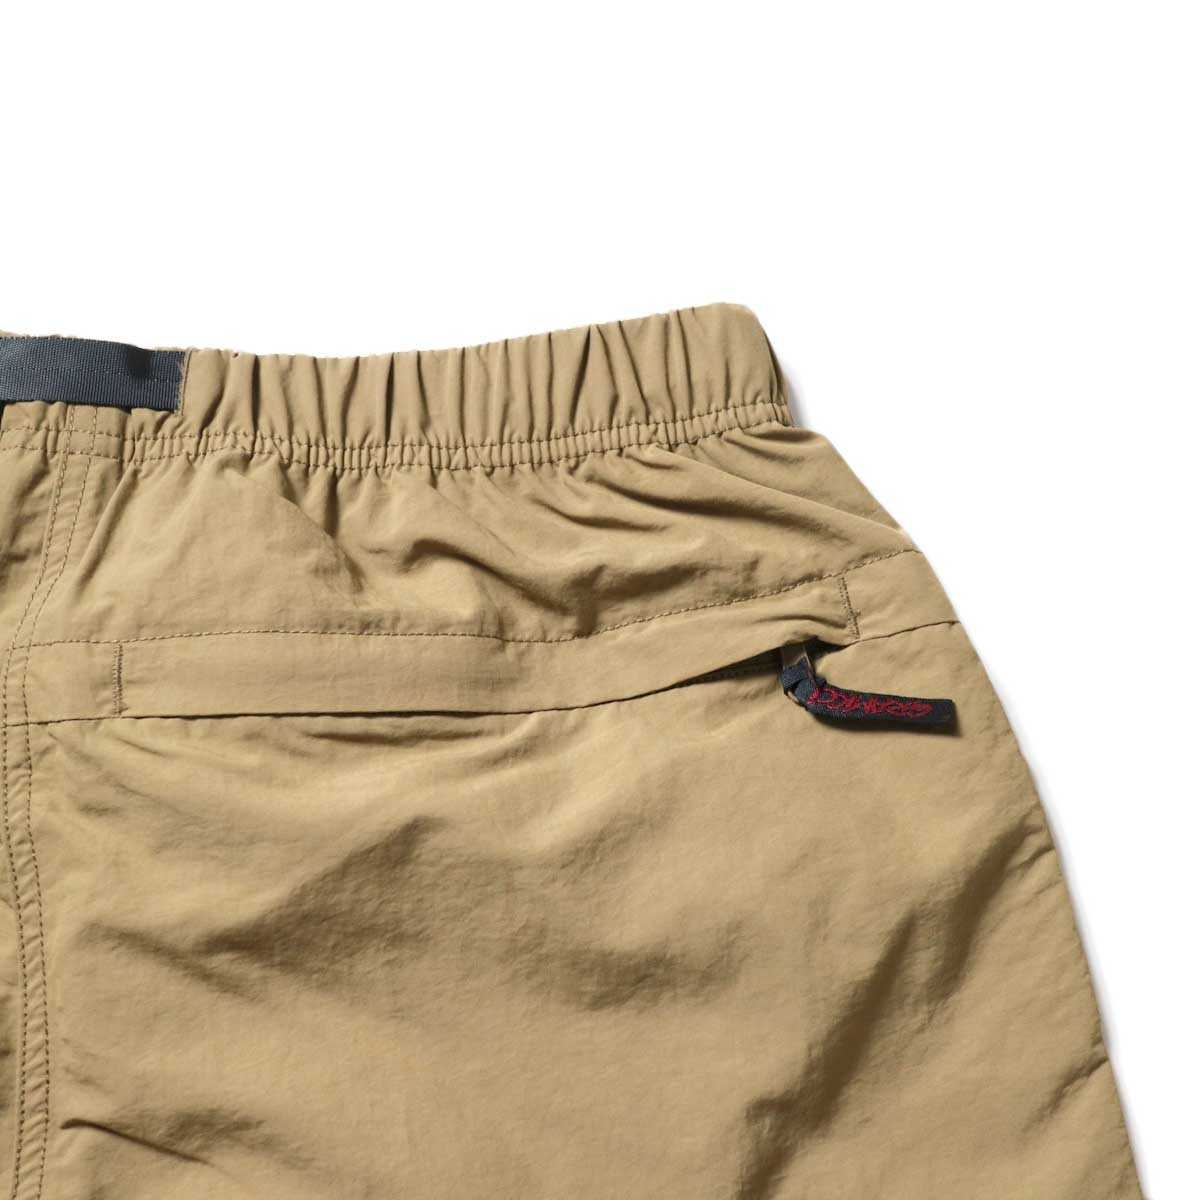 GRAMICCI / SHELL PACKABLE SHORTS (Tan)バックポケット